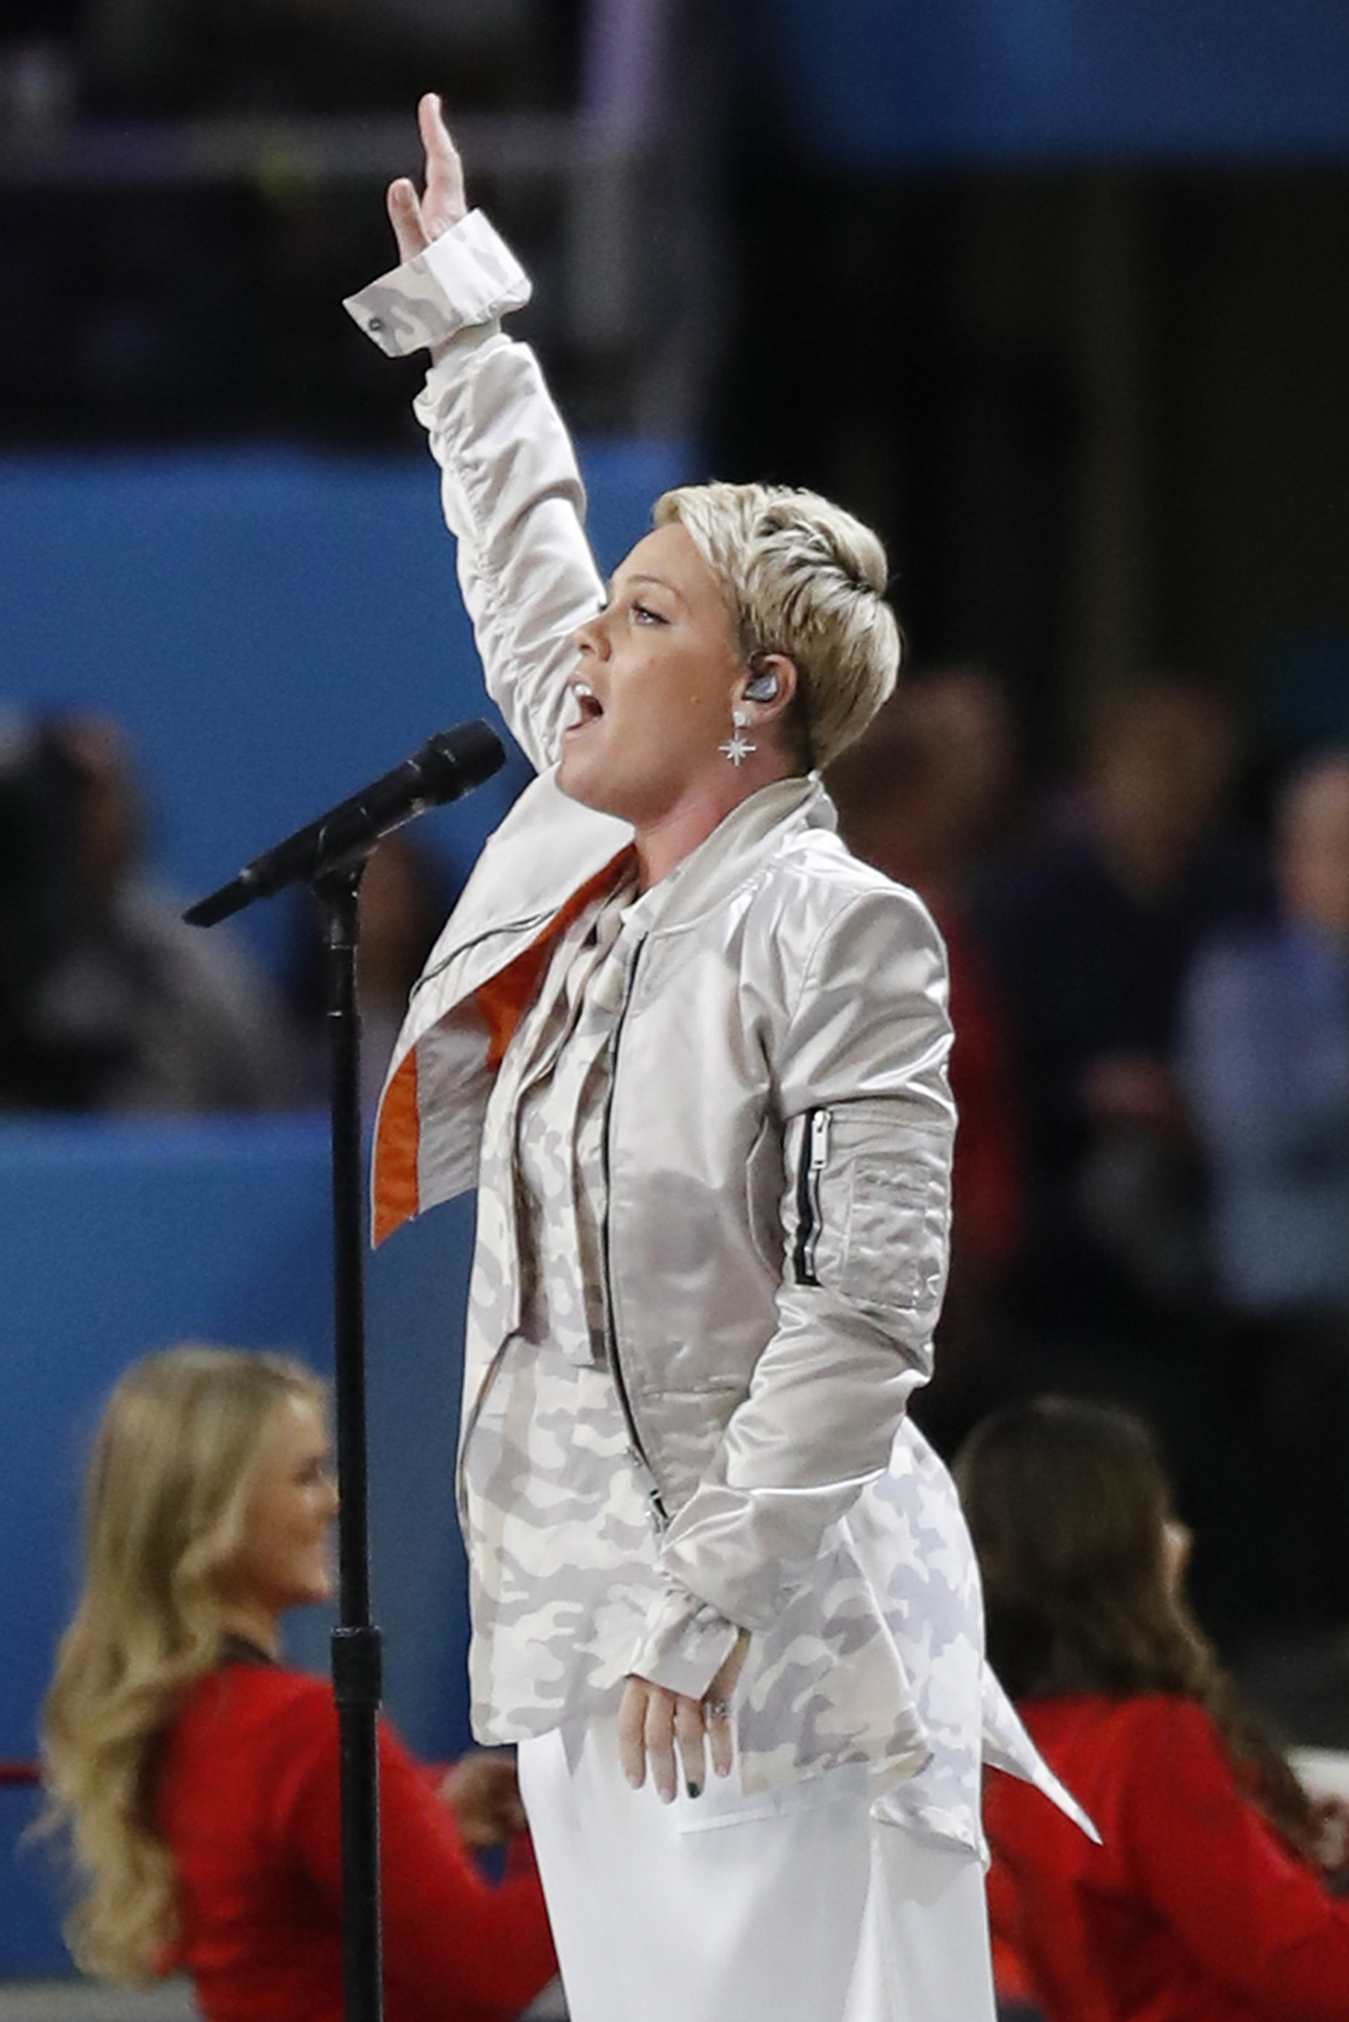 "<div class=""meta image-caption""><div class=""origin-logo origin-image ap""><span>AP</span></div><span class=""caption-text"">Pink performs the National Anthem, before the NFL Super Bowl 52 football game between the Philadelphia Eagles and the New England Patriots, Sunday, Feb. 4, 2018, in Minneapolis. ((AP Photo/Tony Gutierrez))</span></div>"